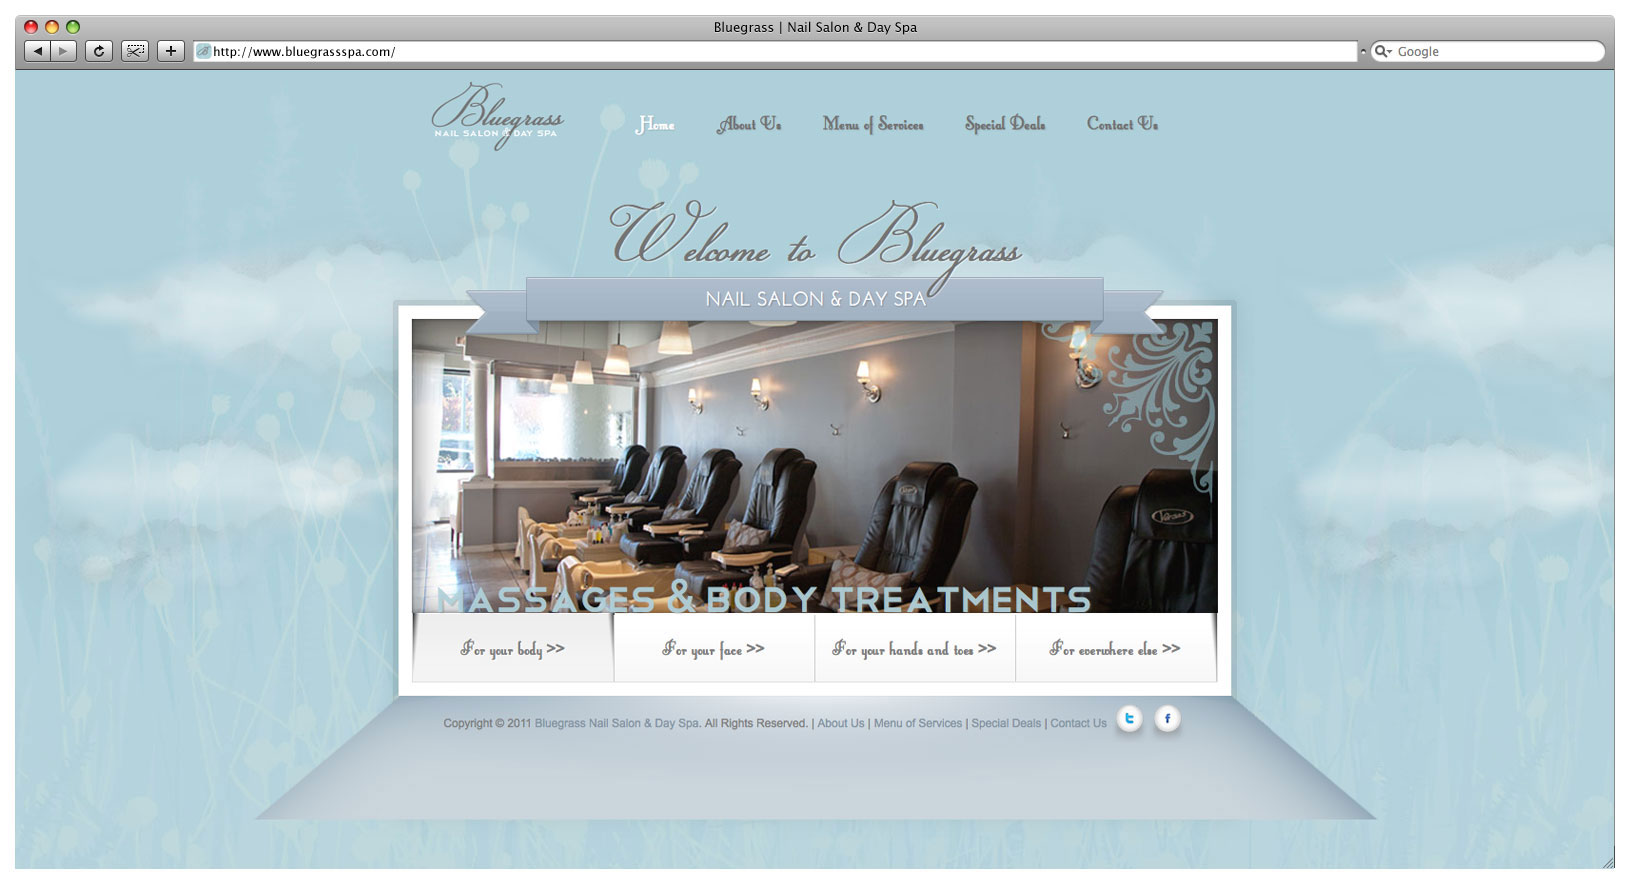 Bluegrass Day Spa & Nail Salon Website